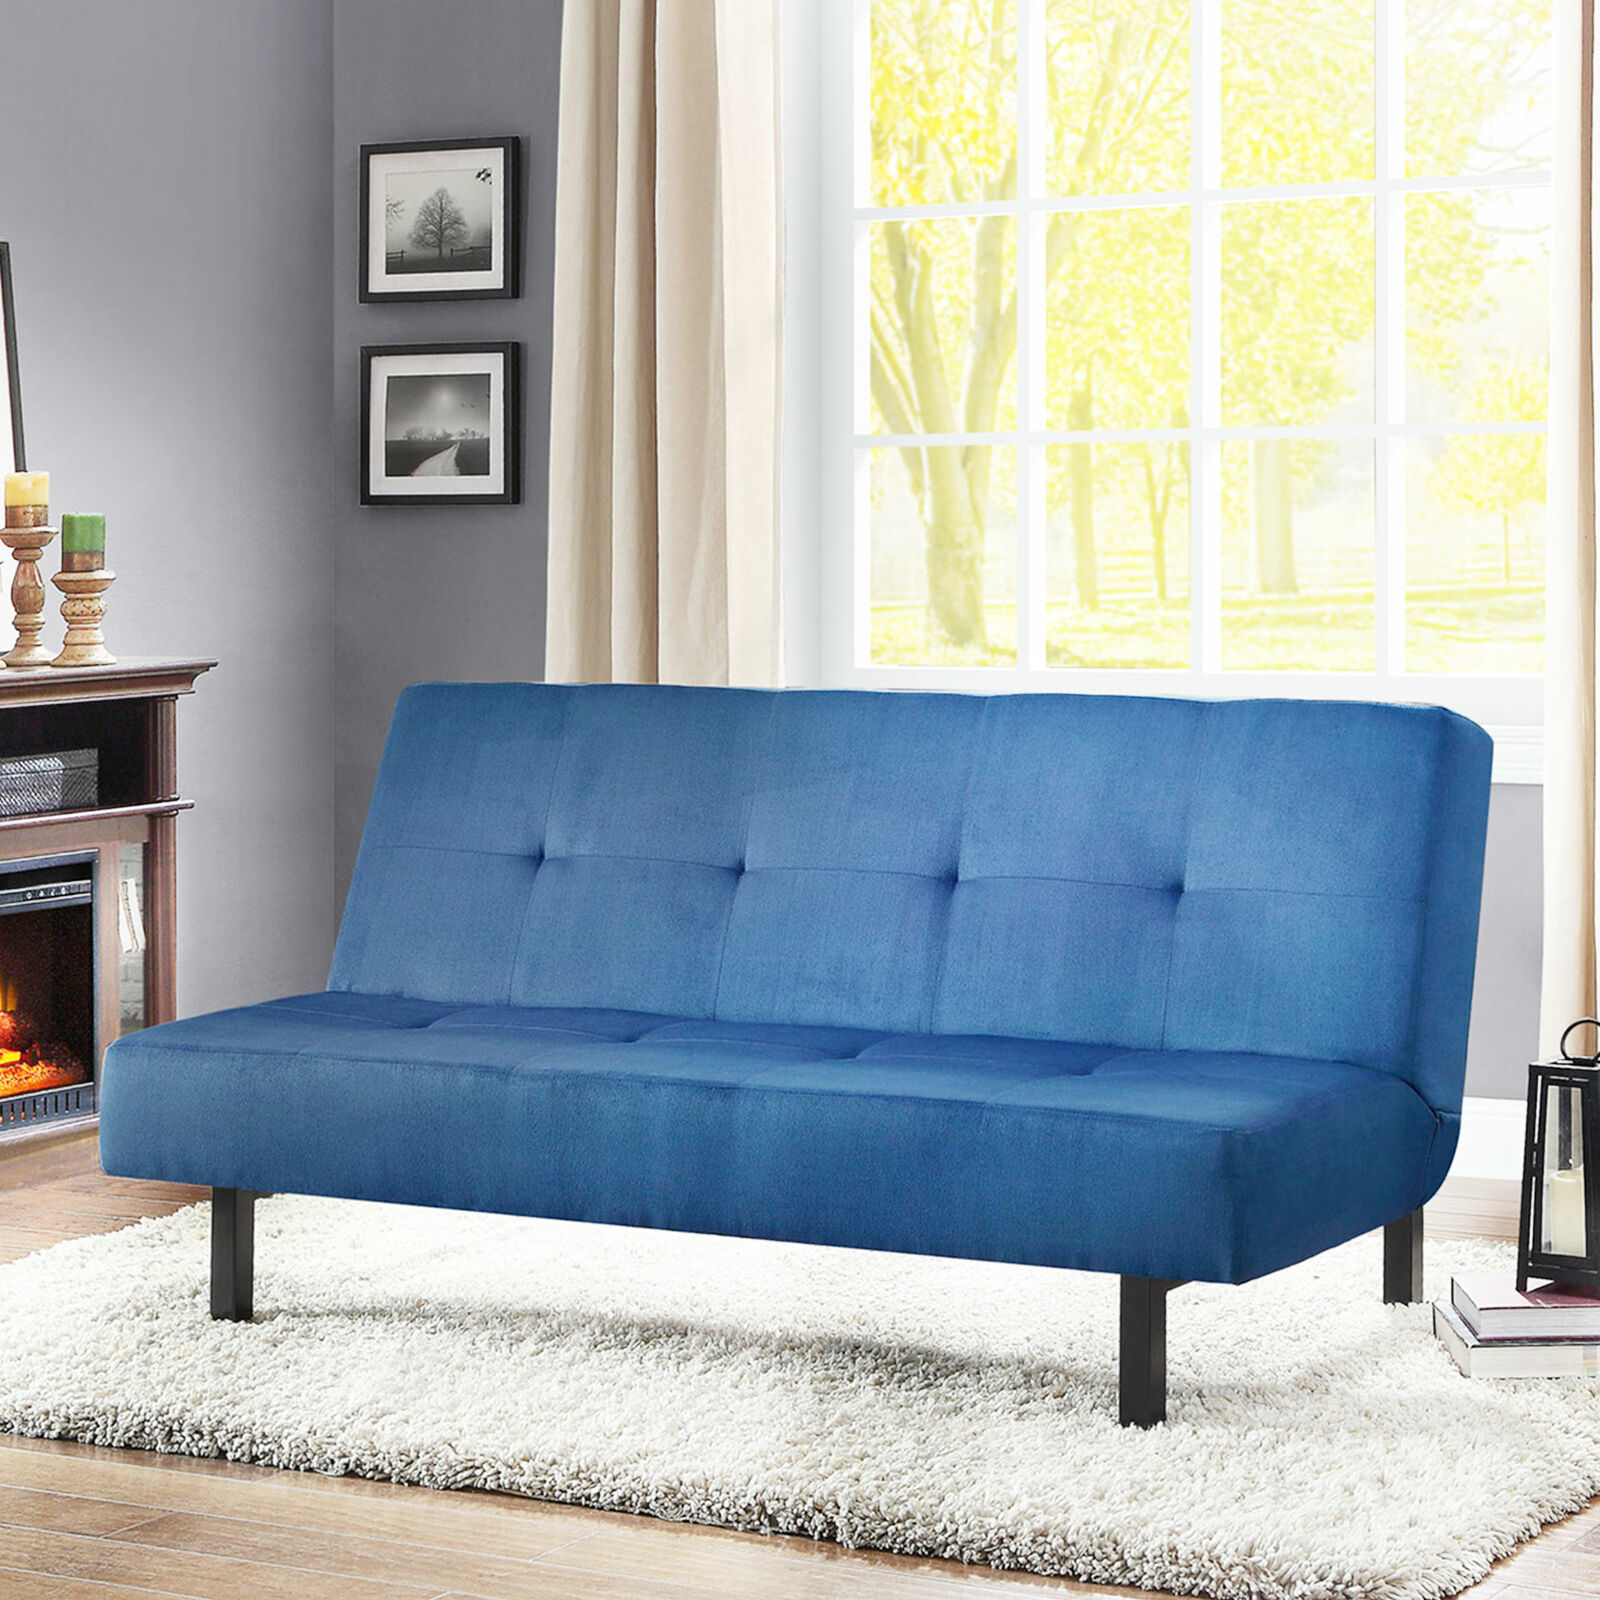 Tufted Futon Sofa Bed Convertible Lounger Living Room Contemporary Furniture